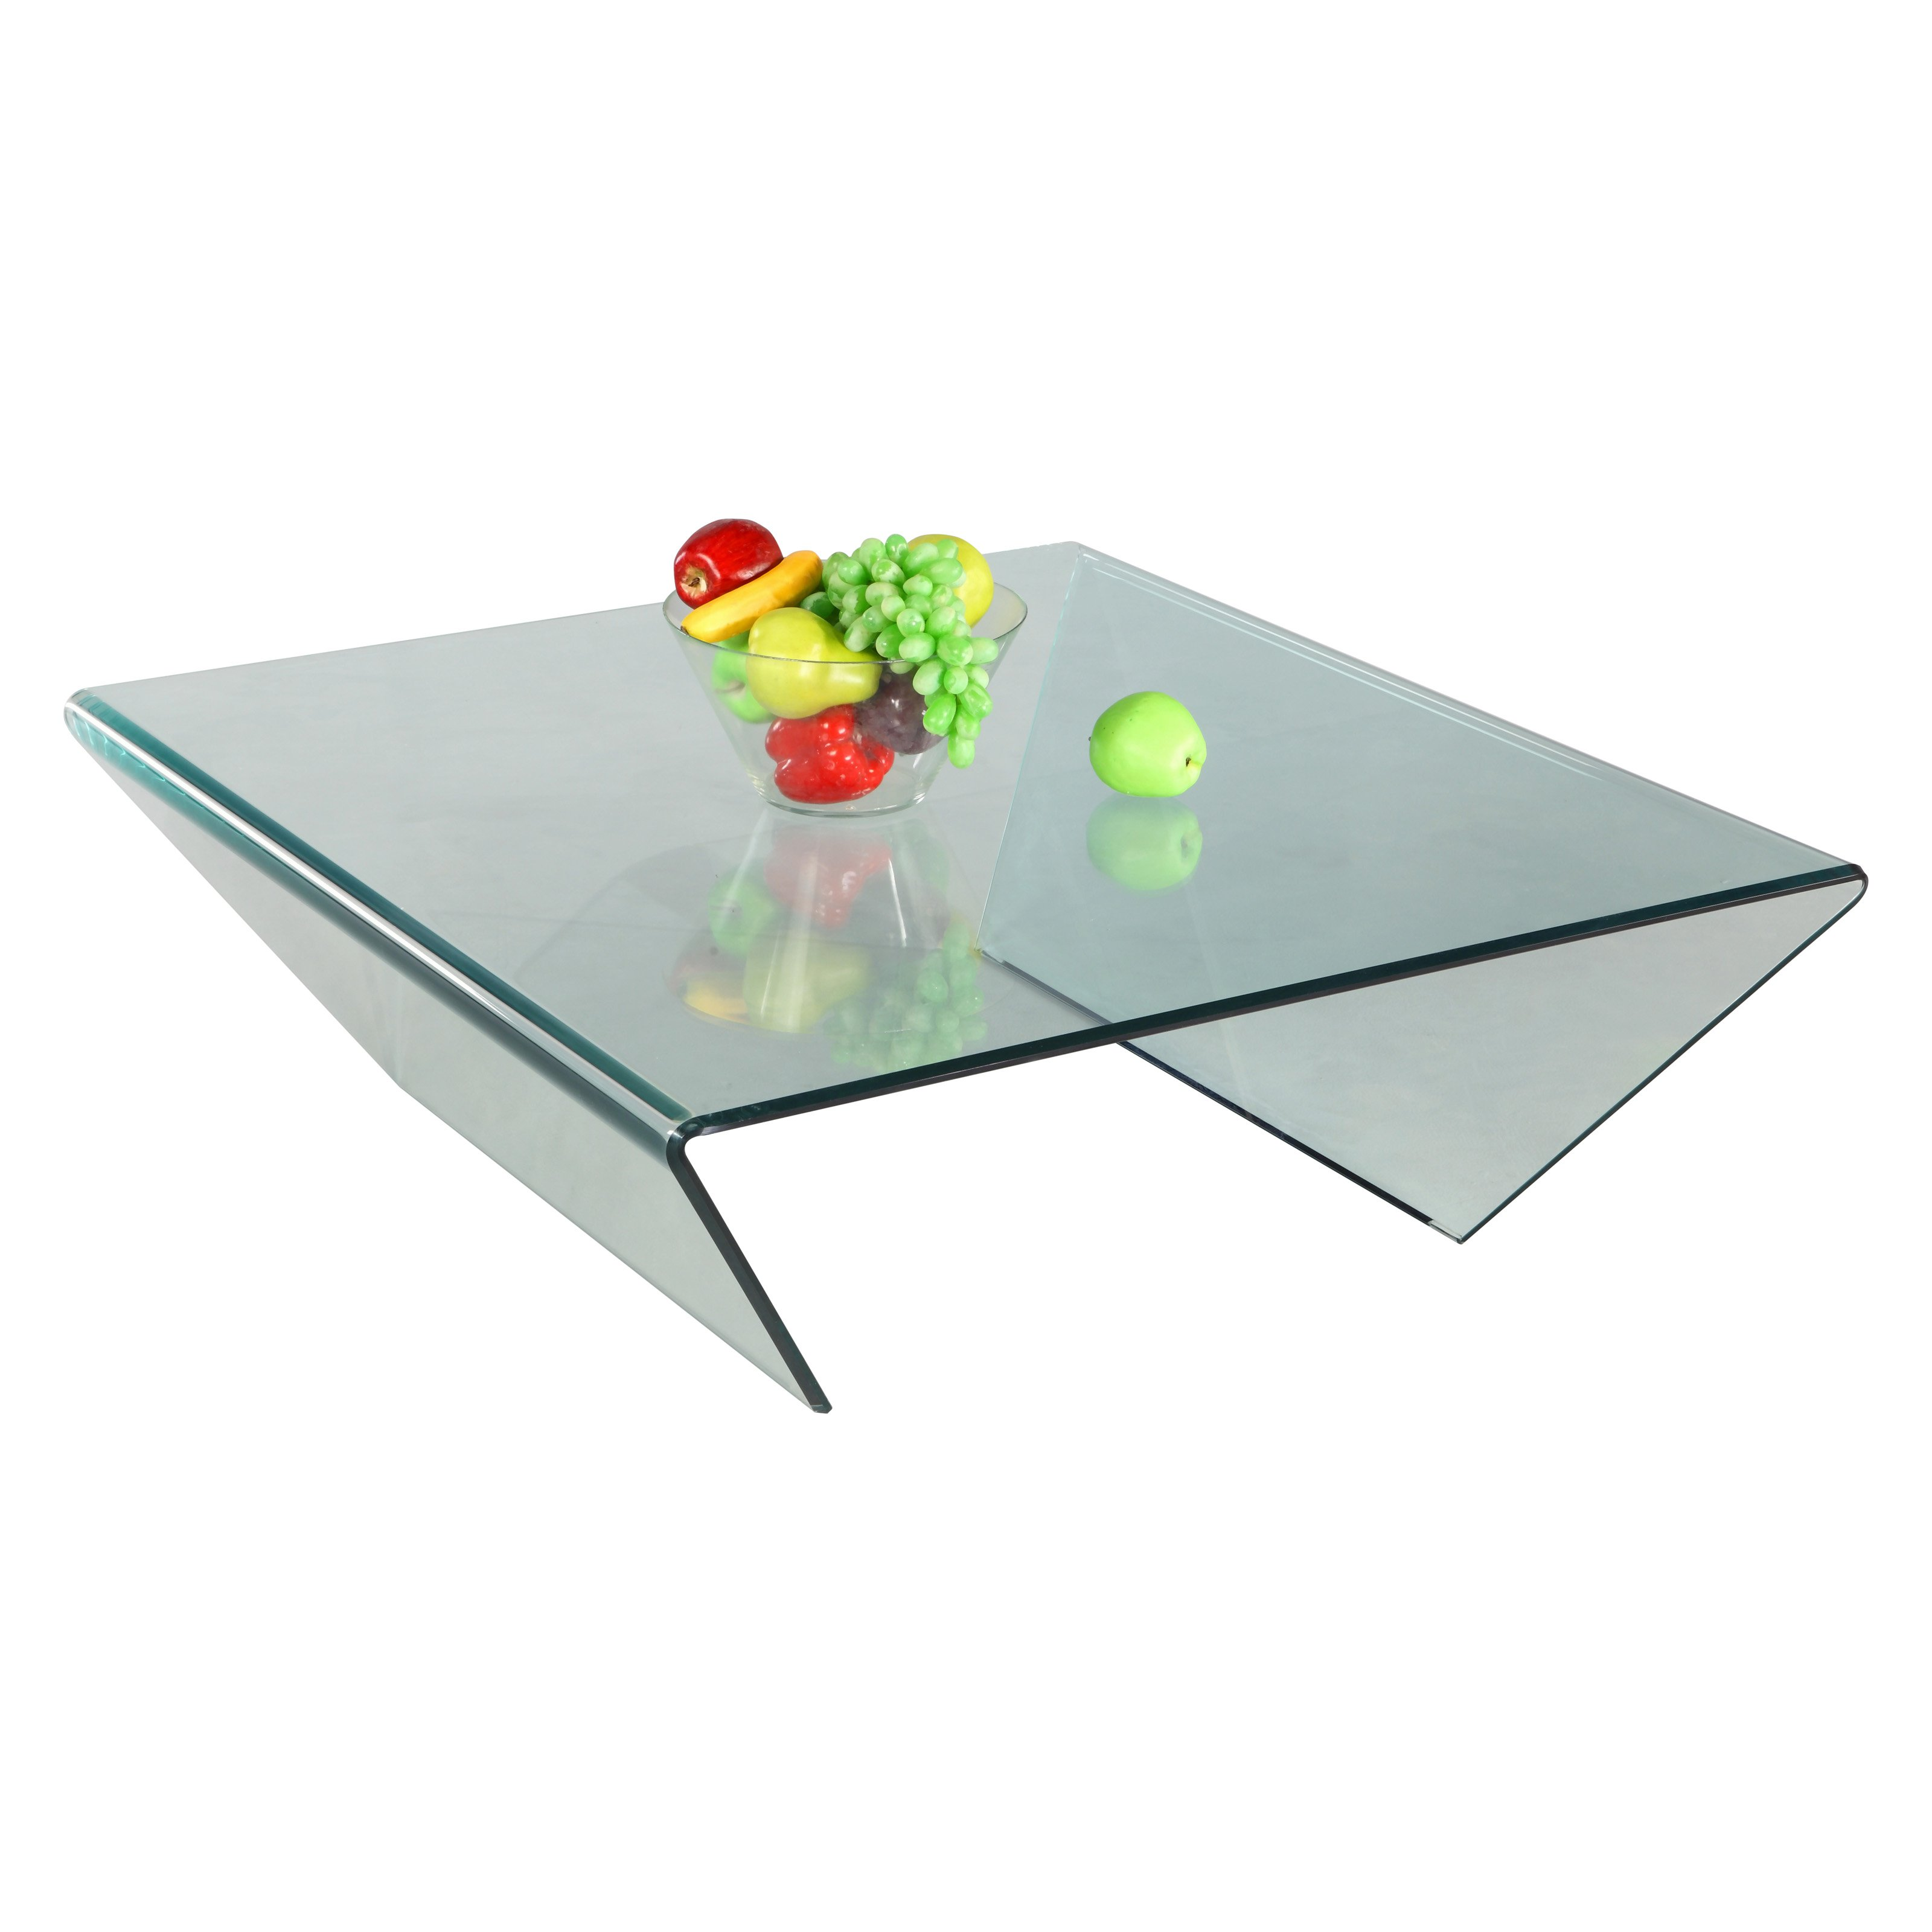 Chintaly Square Bent Glass Cocktail Table with Mirror Effect by Chintaly